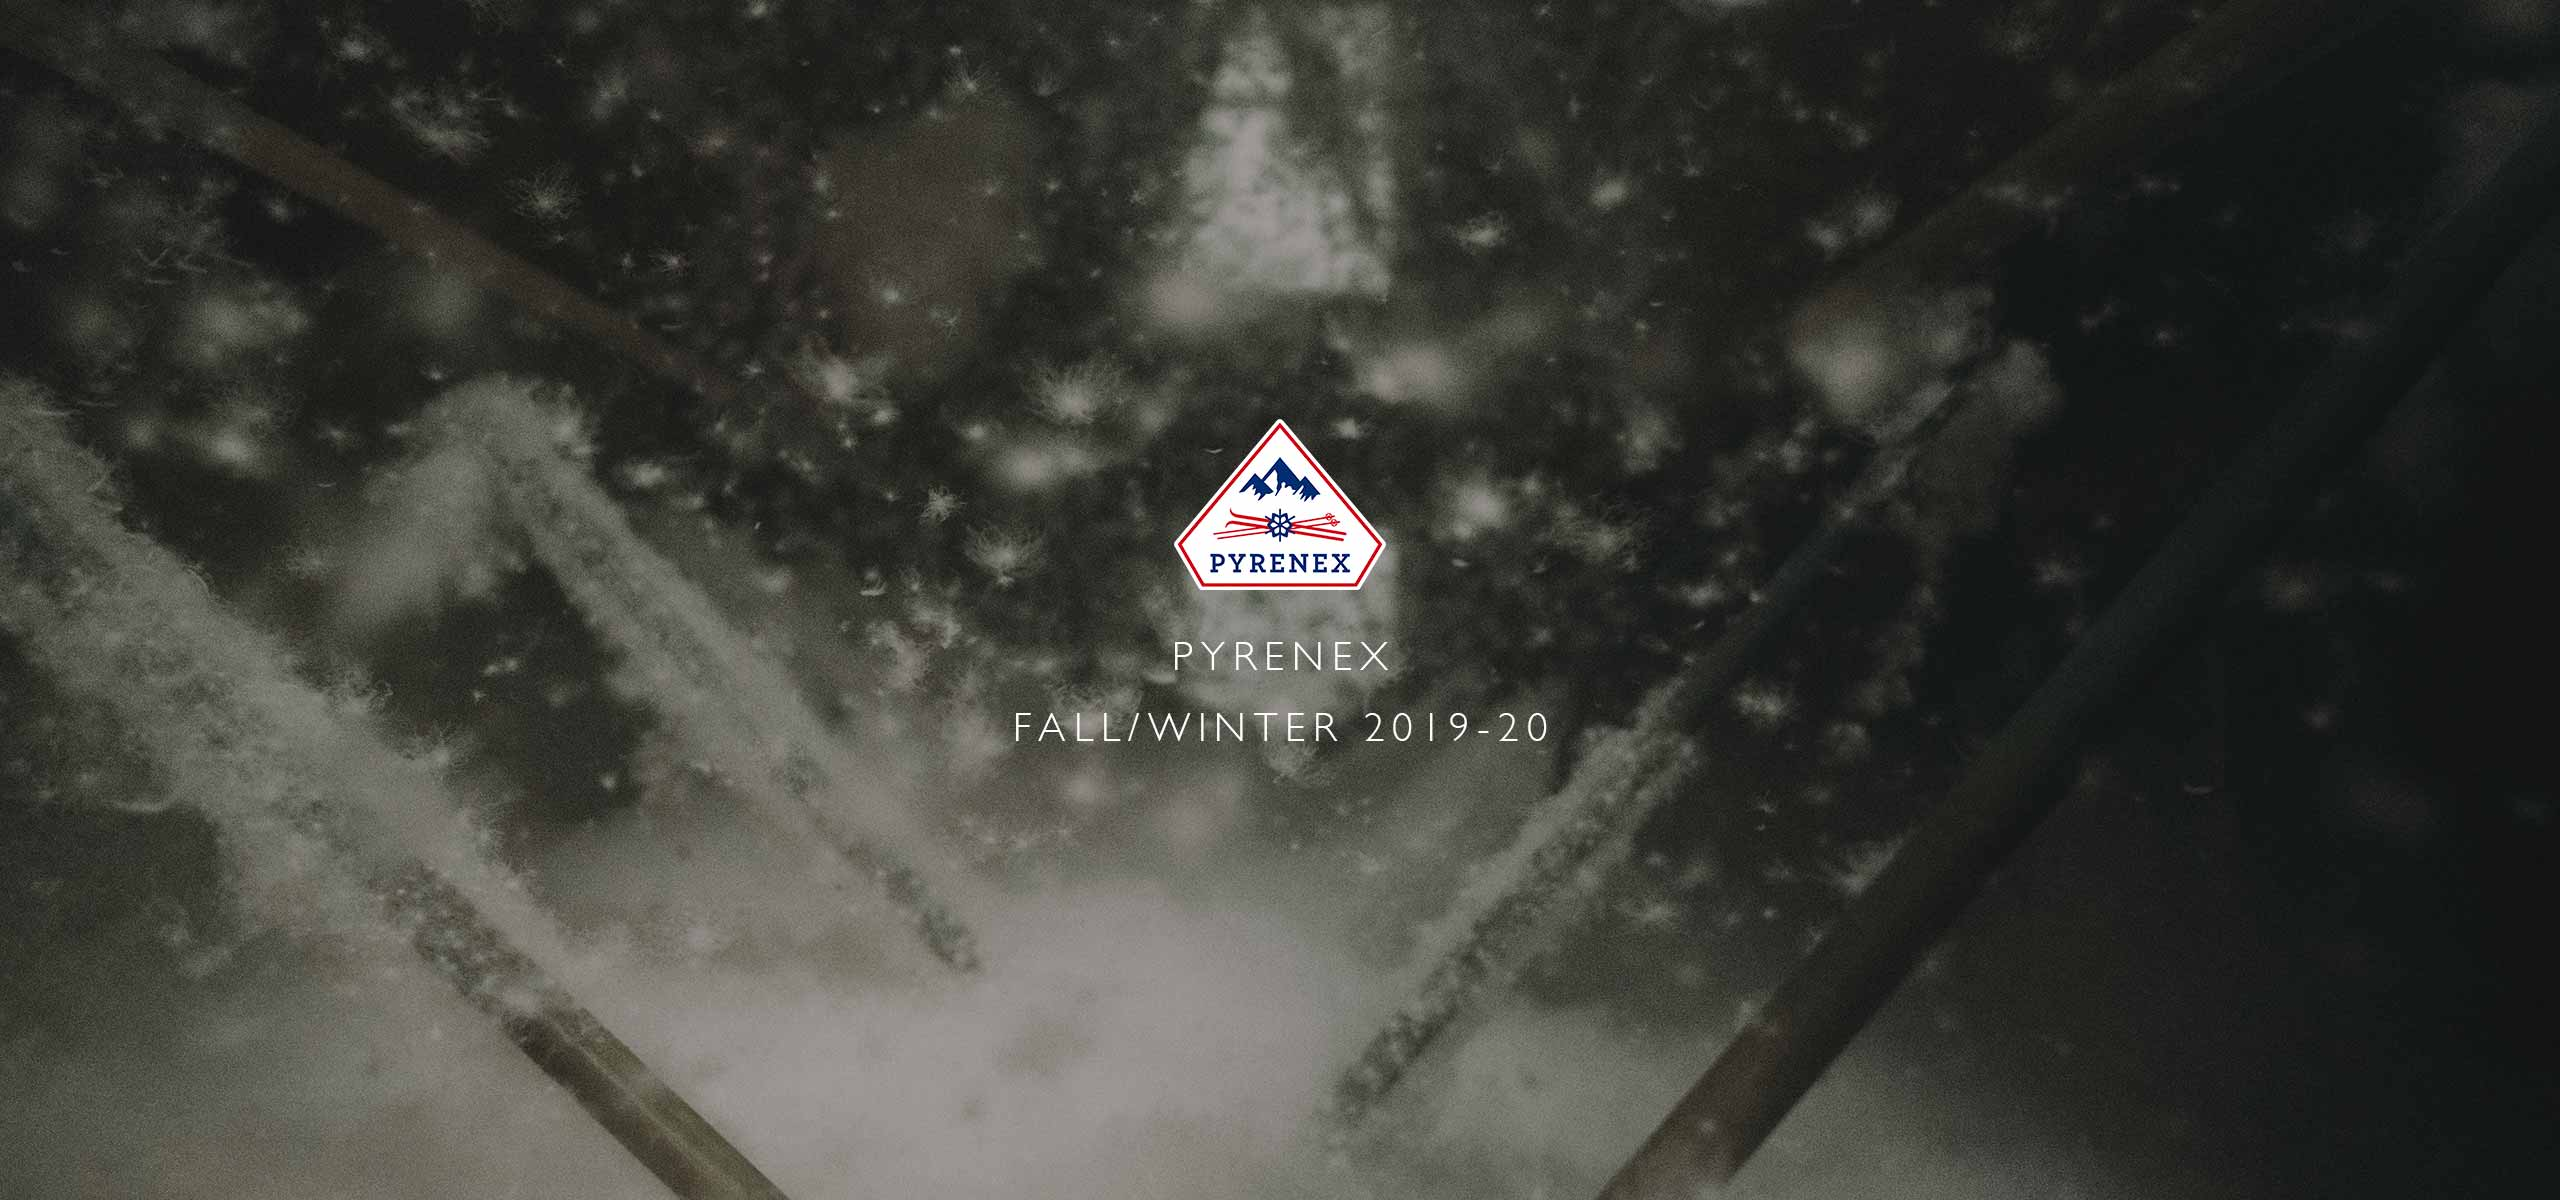 PYRENEX FALL/WINTER 2019-20